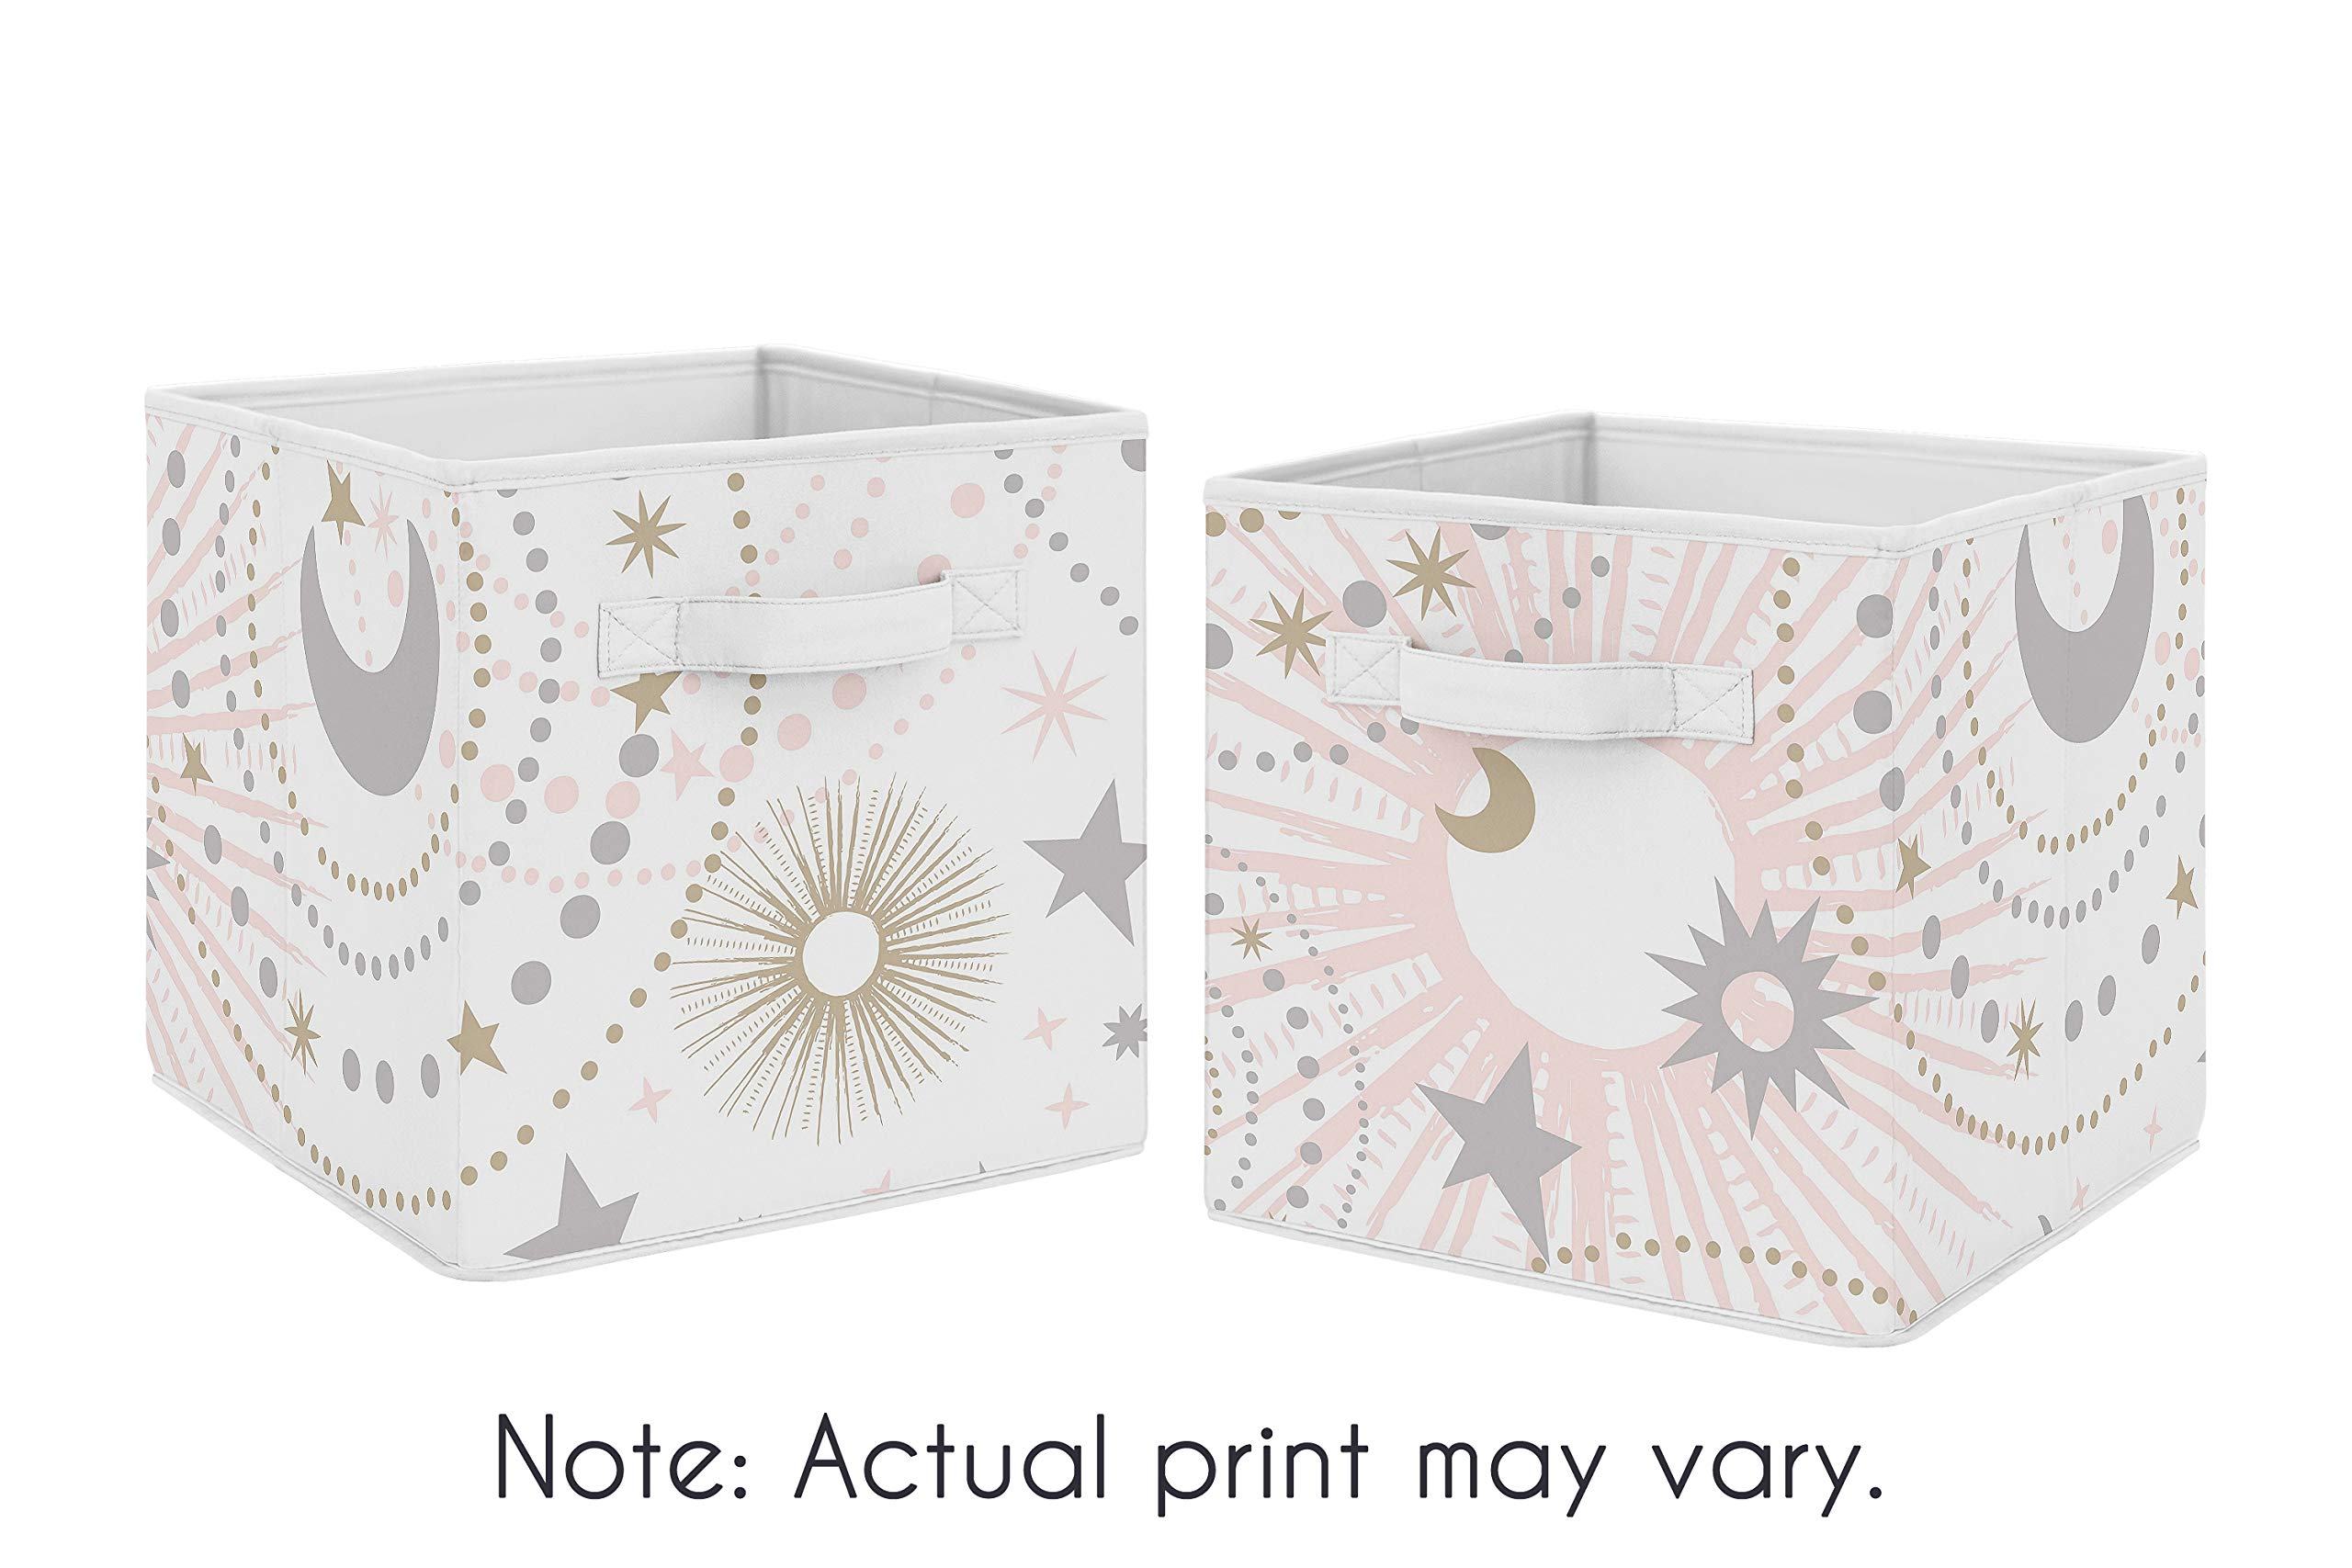 Sweet Jojo Designs Blush Pink, Gold and Grey Star and Moon Organizer Storage Bins for Celestial Collection - Set of 2 by Sweet Jojo Designs